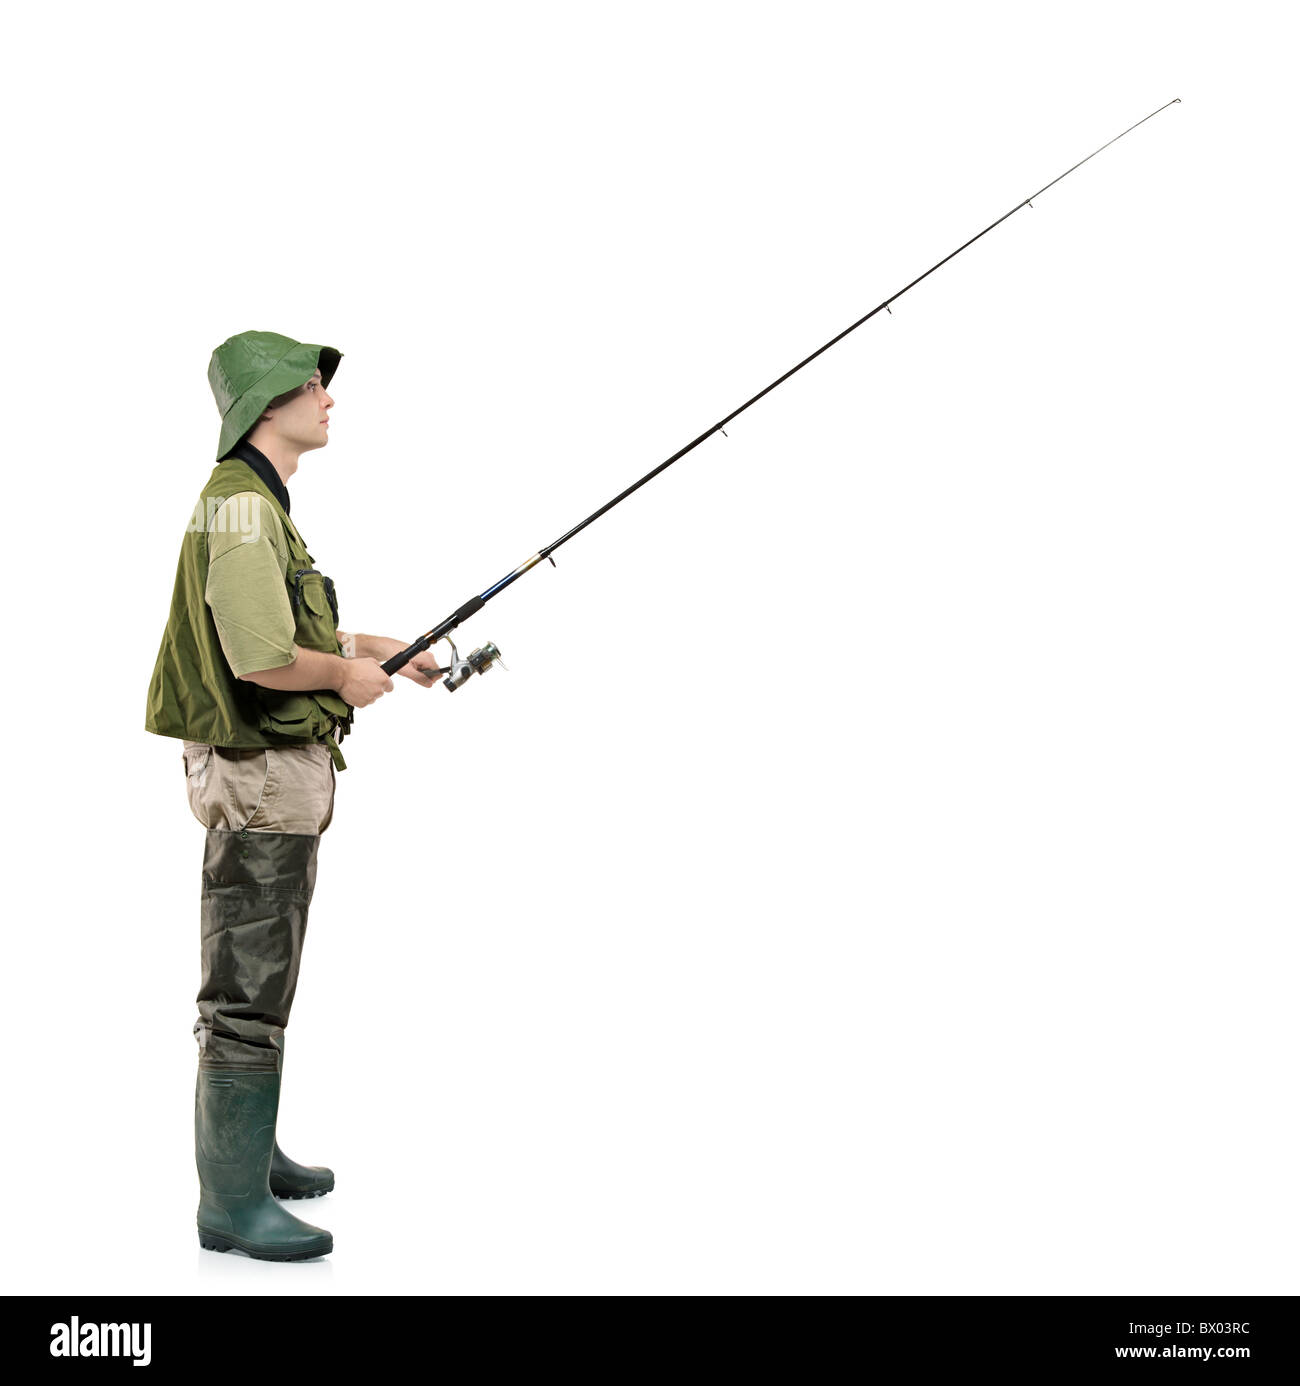 A full length portrait of a fisherman holding a fishing pole - Stock Image